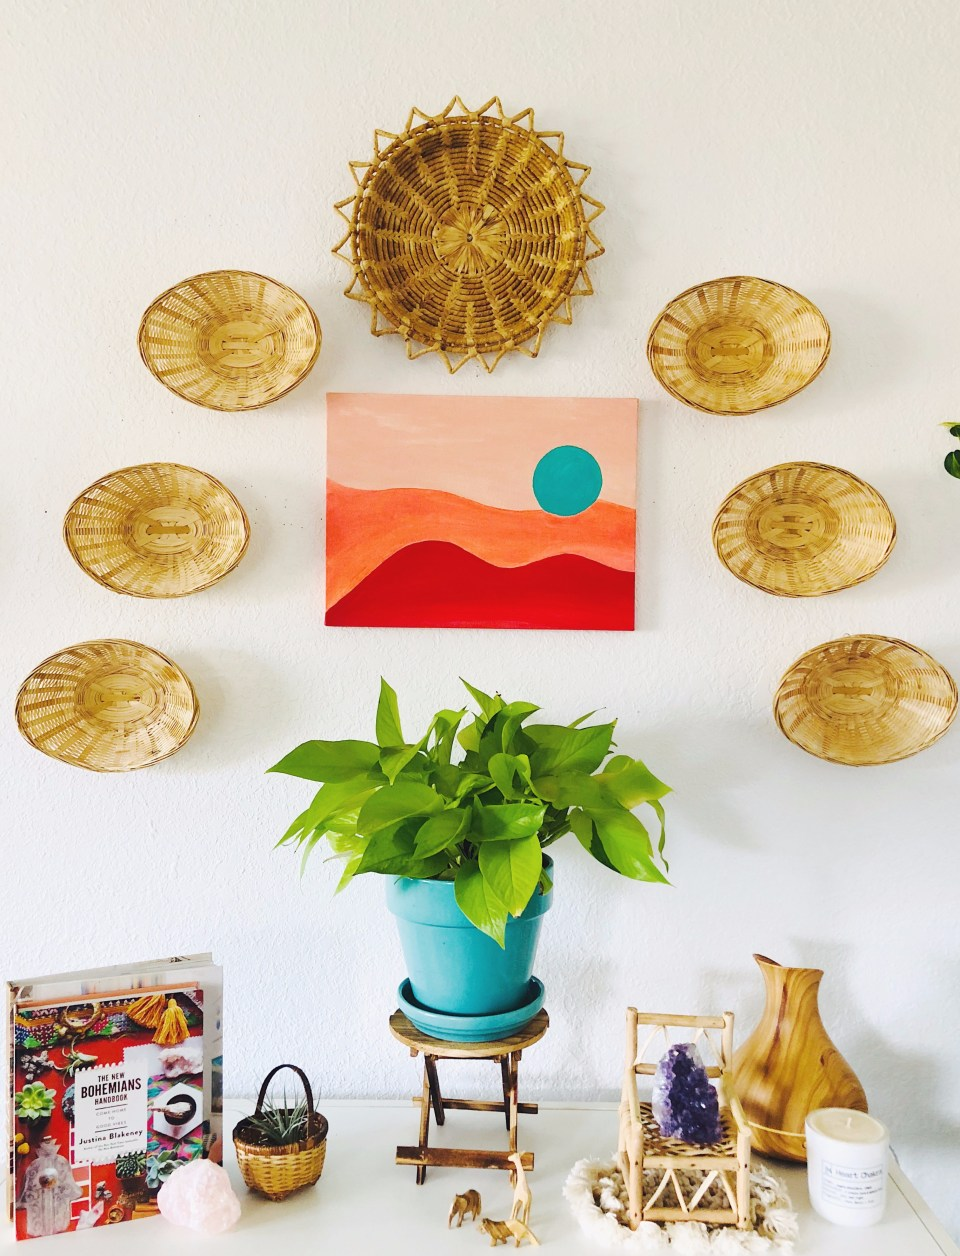 Add some bohemian vibes to your space with a DIY basket wall!